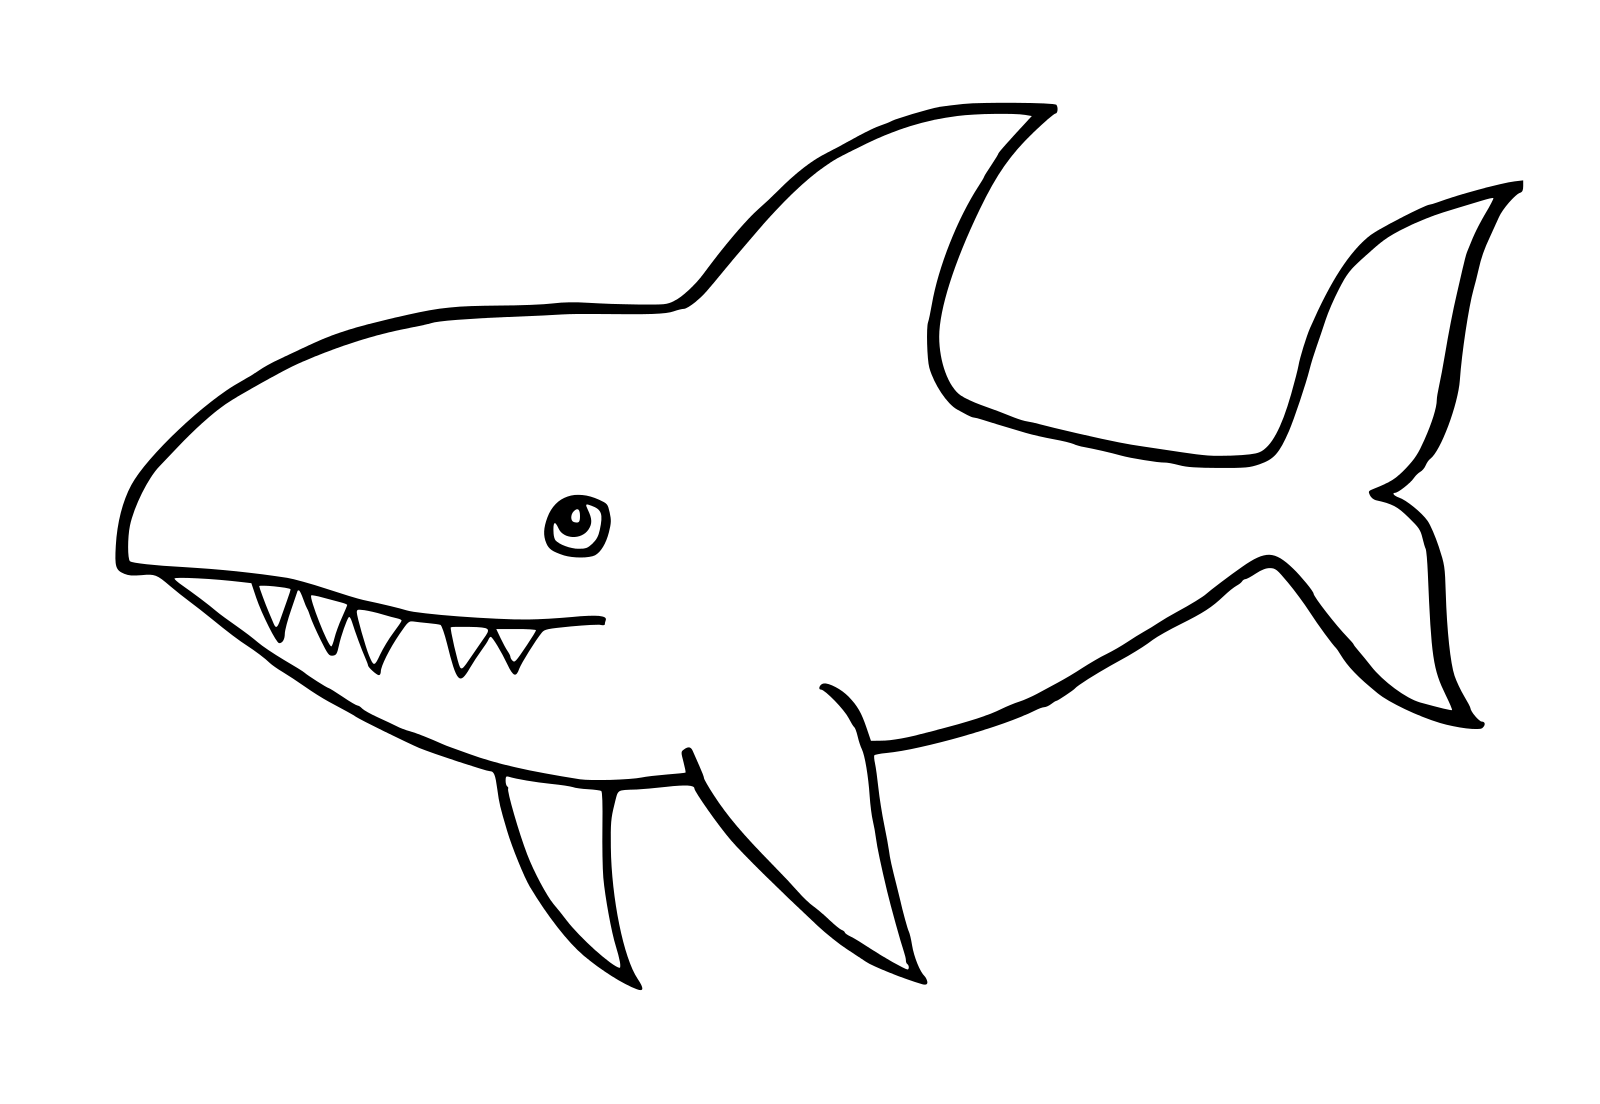 Clipart Shark Black And White Clipart Shark Black And